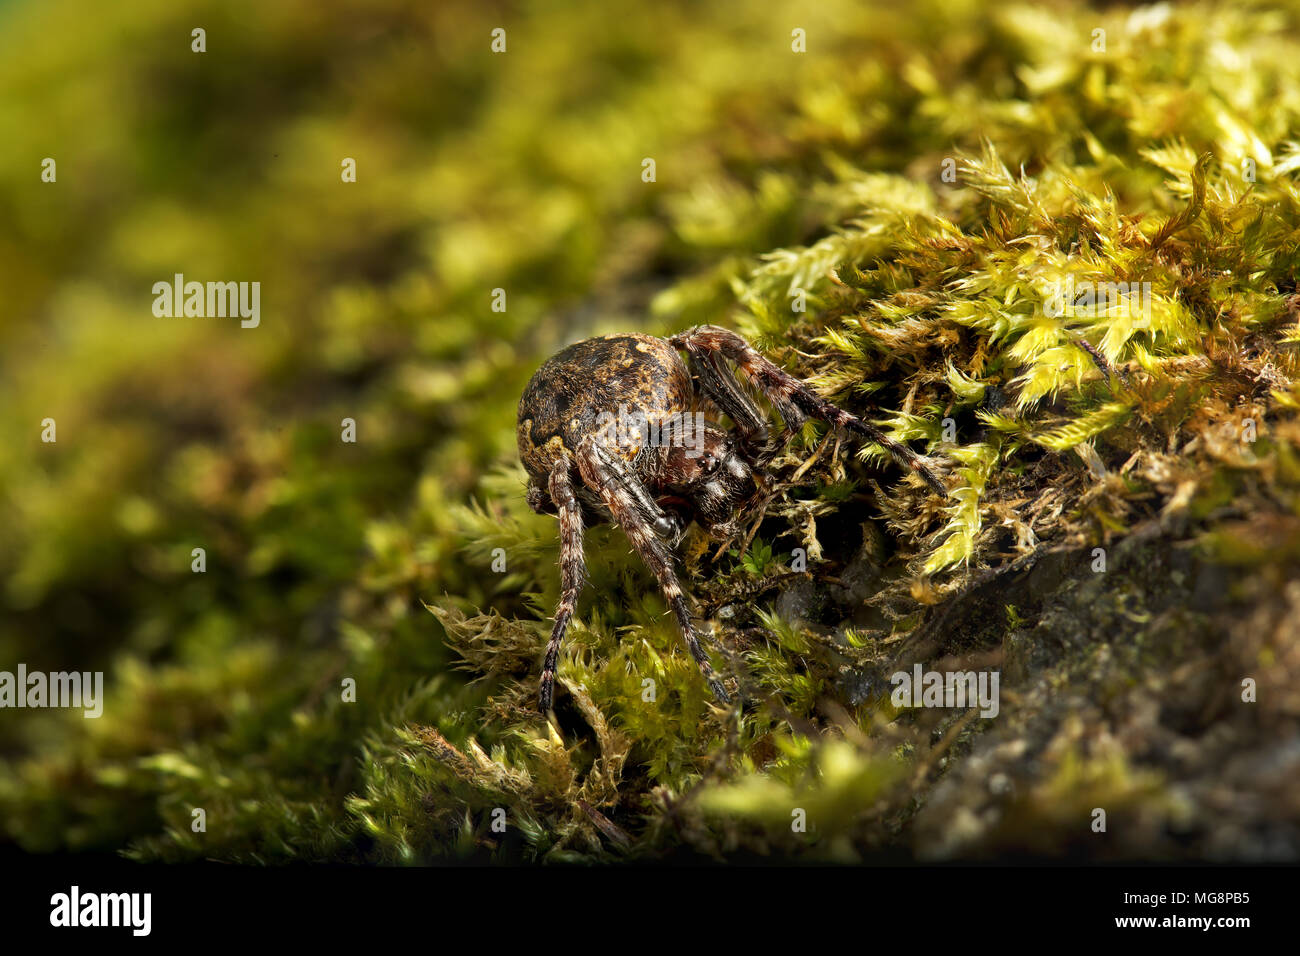 Walnut orb weaver (Nuctenea umbratica) A large and flattened orb-weaving spider in the family Araneidae - Stock Image